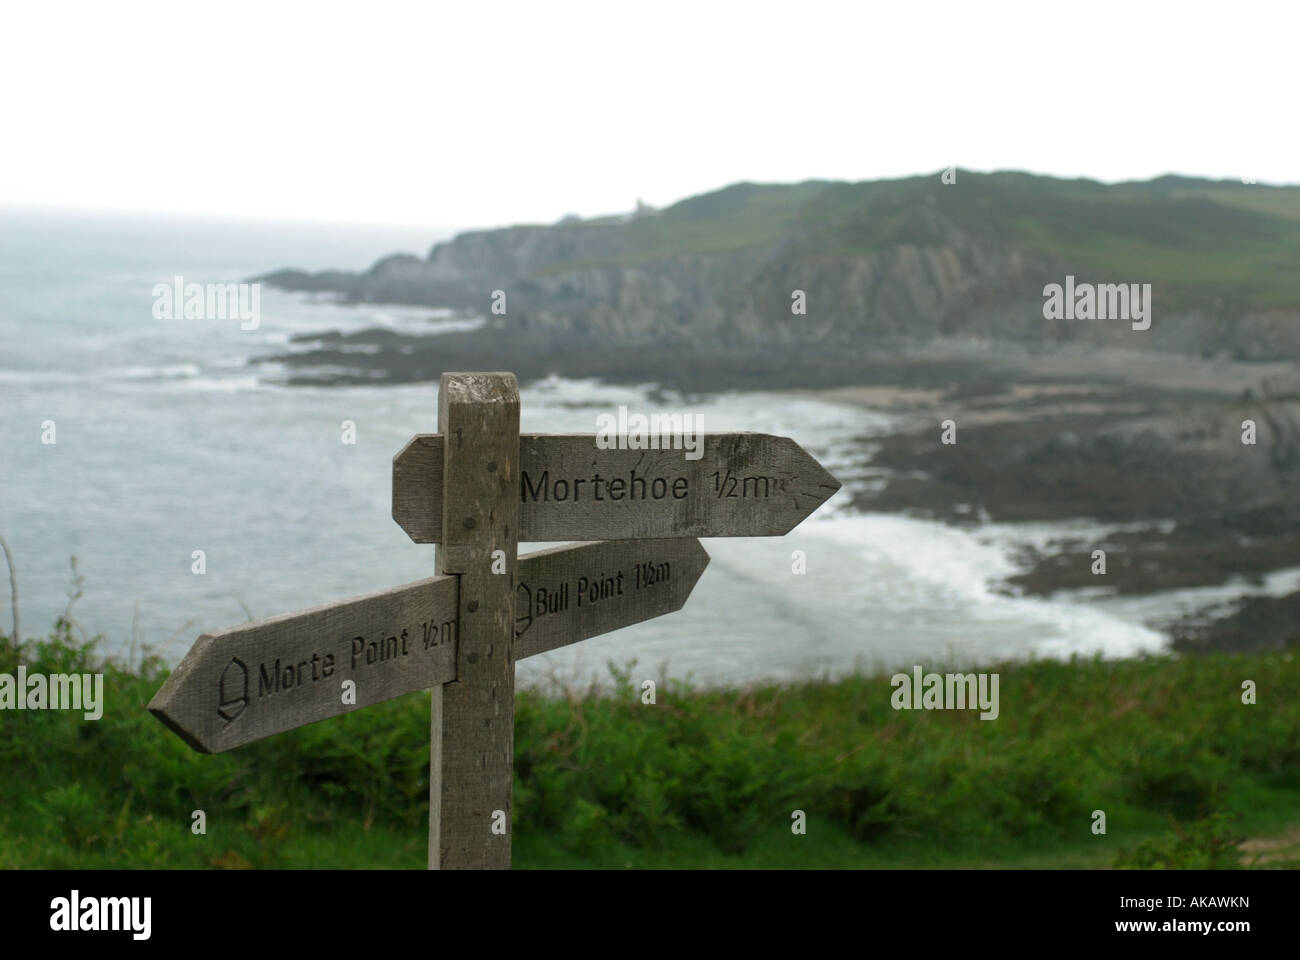 South West Coast Path signage between Woolacombe and Illfracombe on the North Devon coast near Morthoe - Stock Image